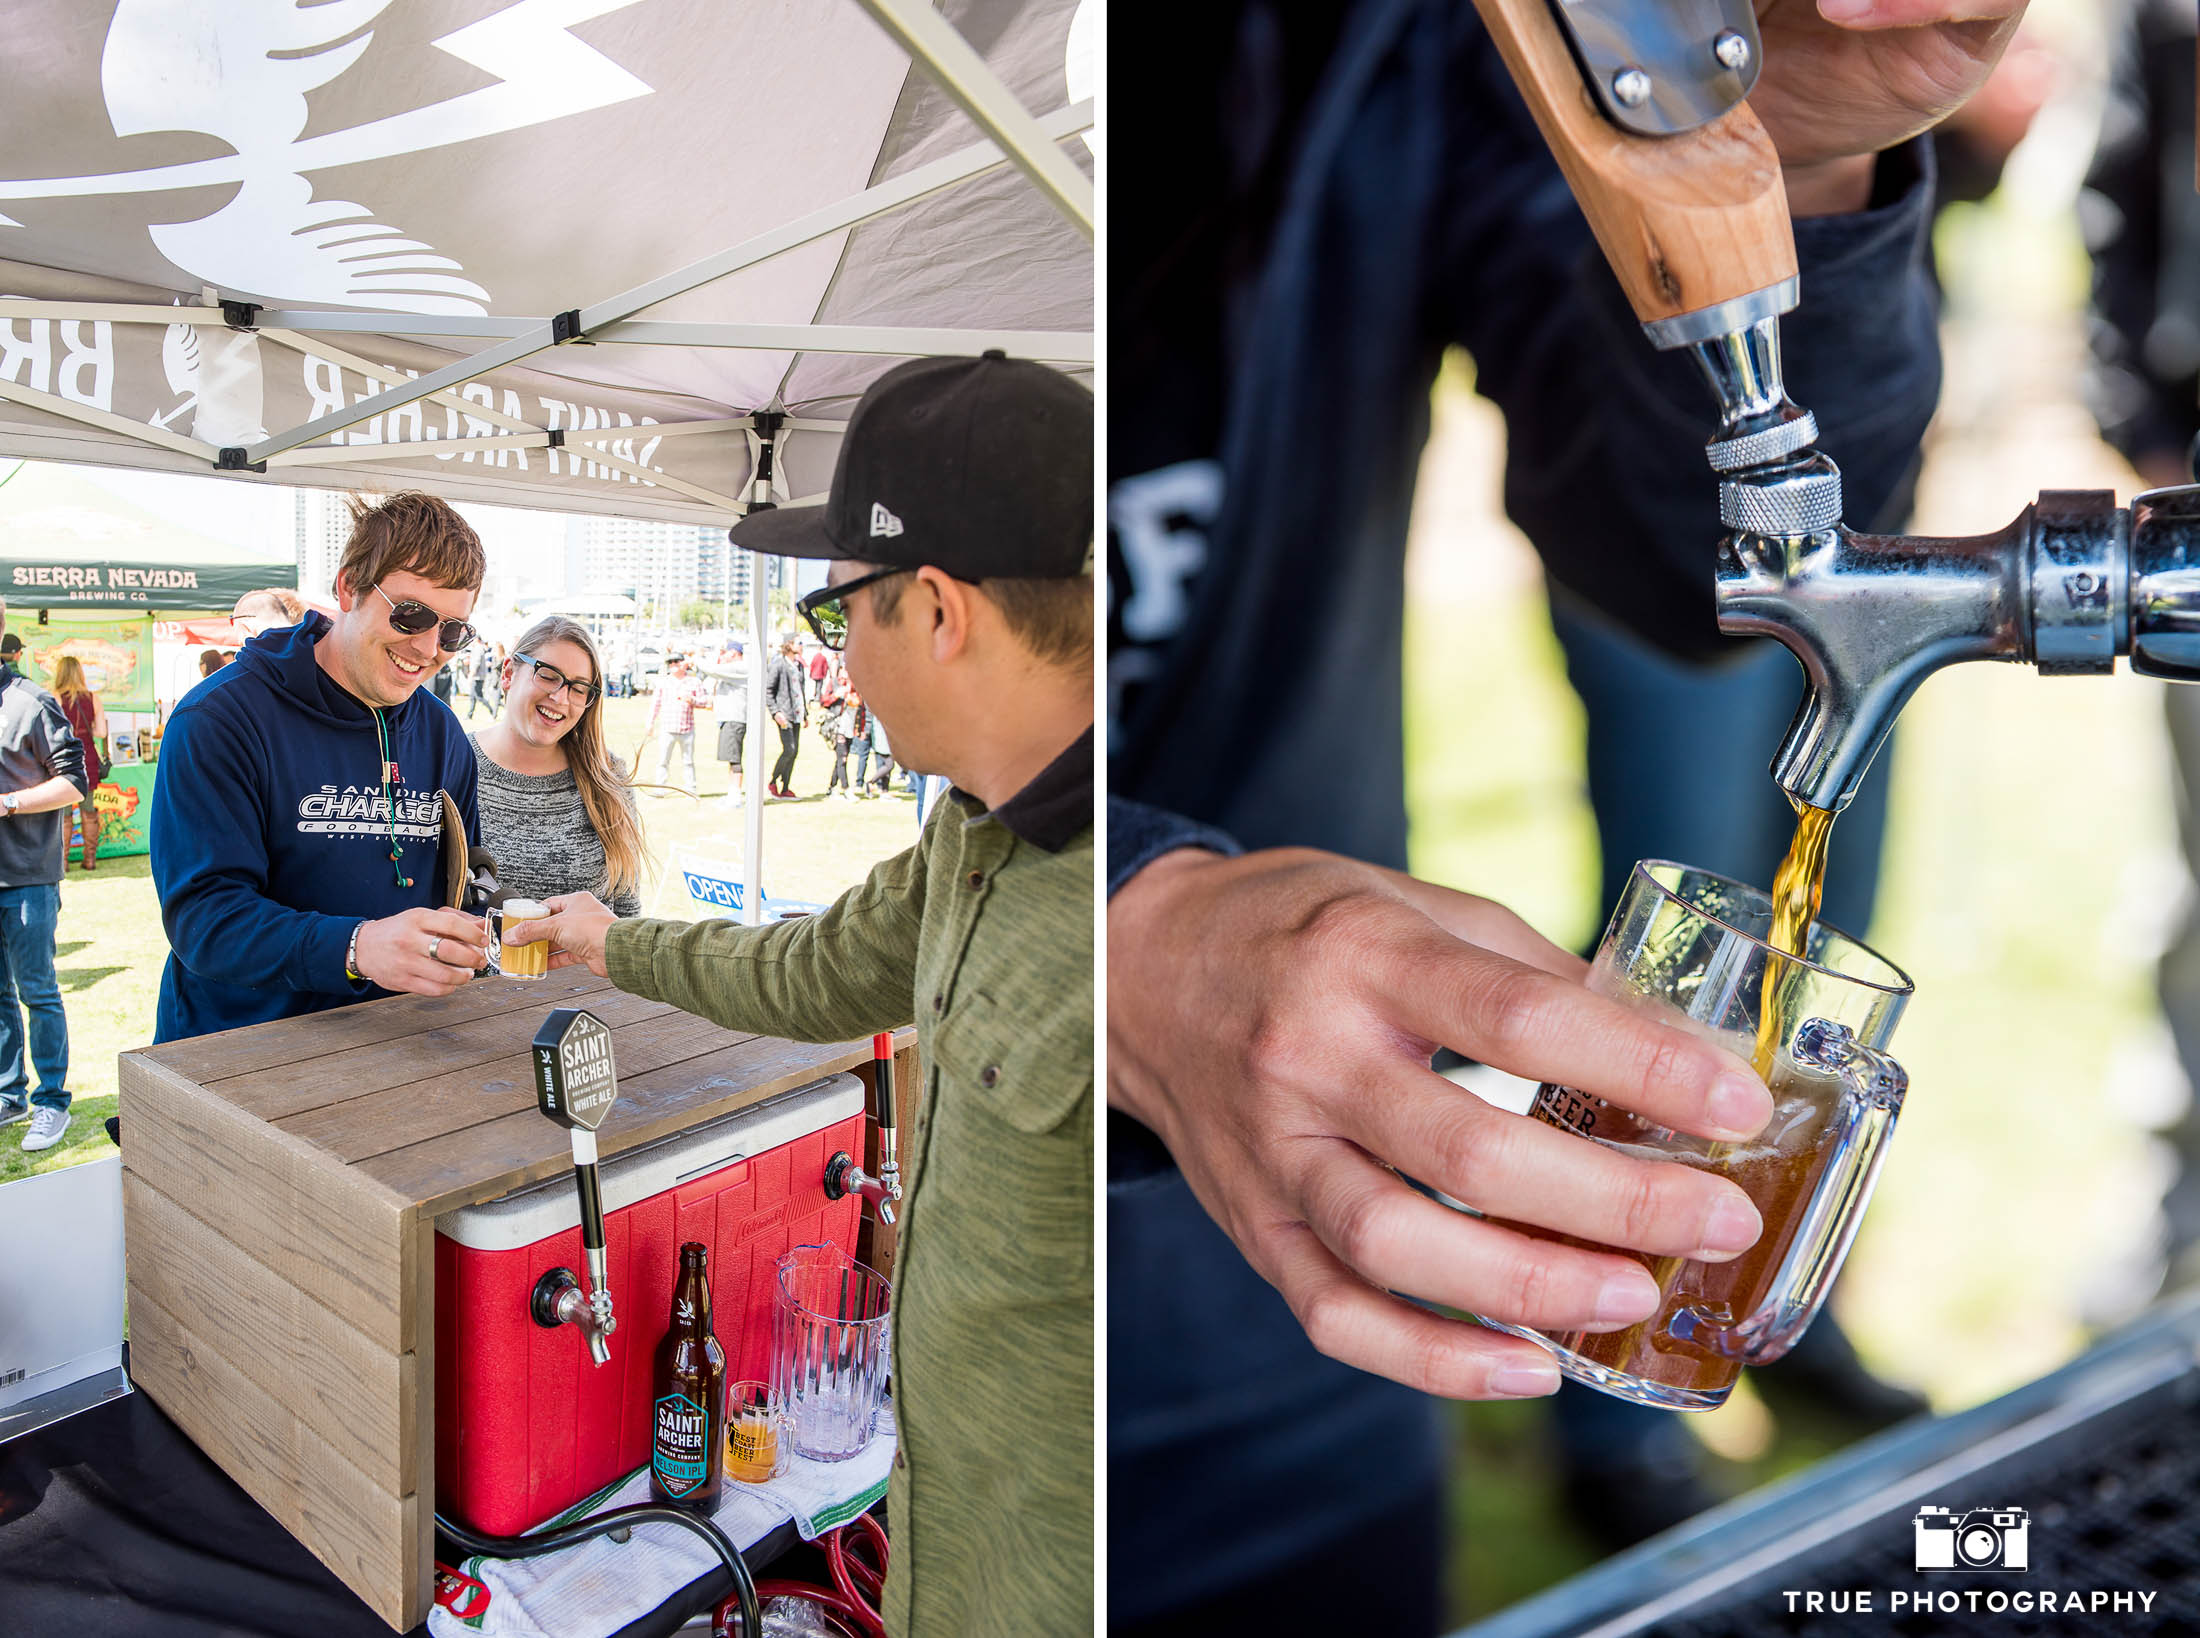 Event goers taste beer samples from St. Archer Brewery during Best Coast Beer Fest in Downtown San Diego, California